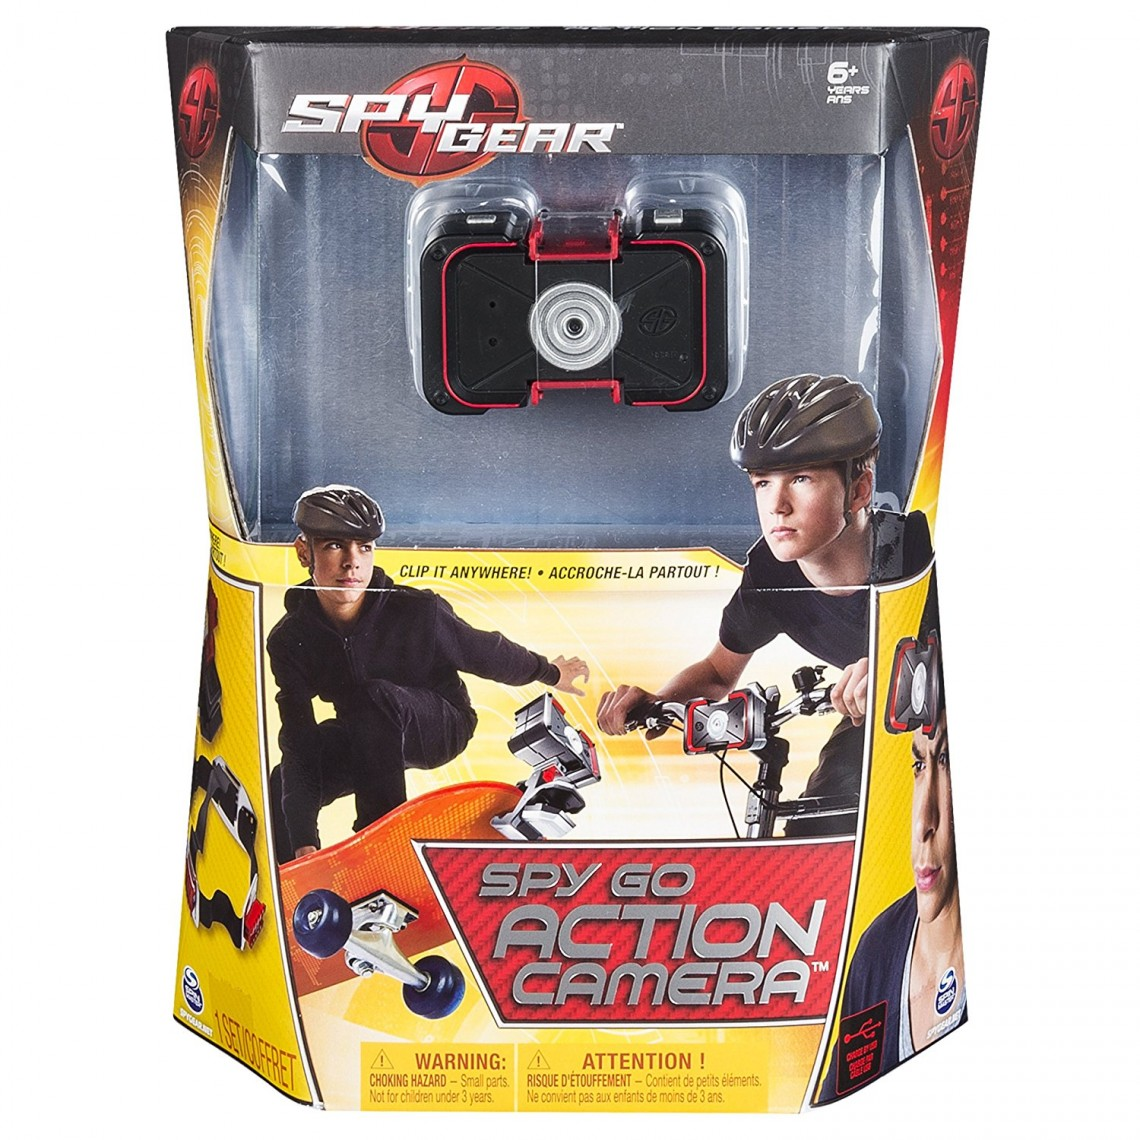 Spy-go Action Camera